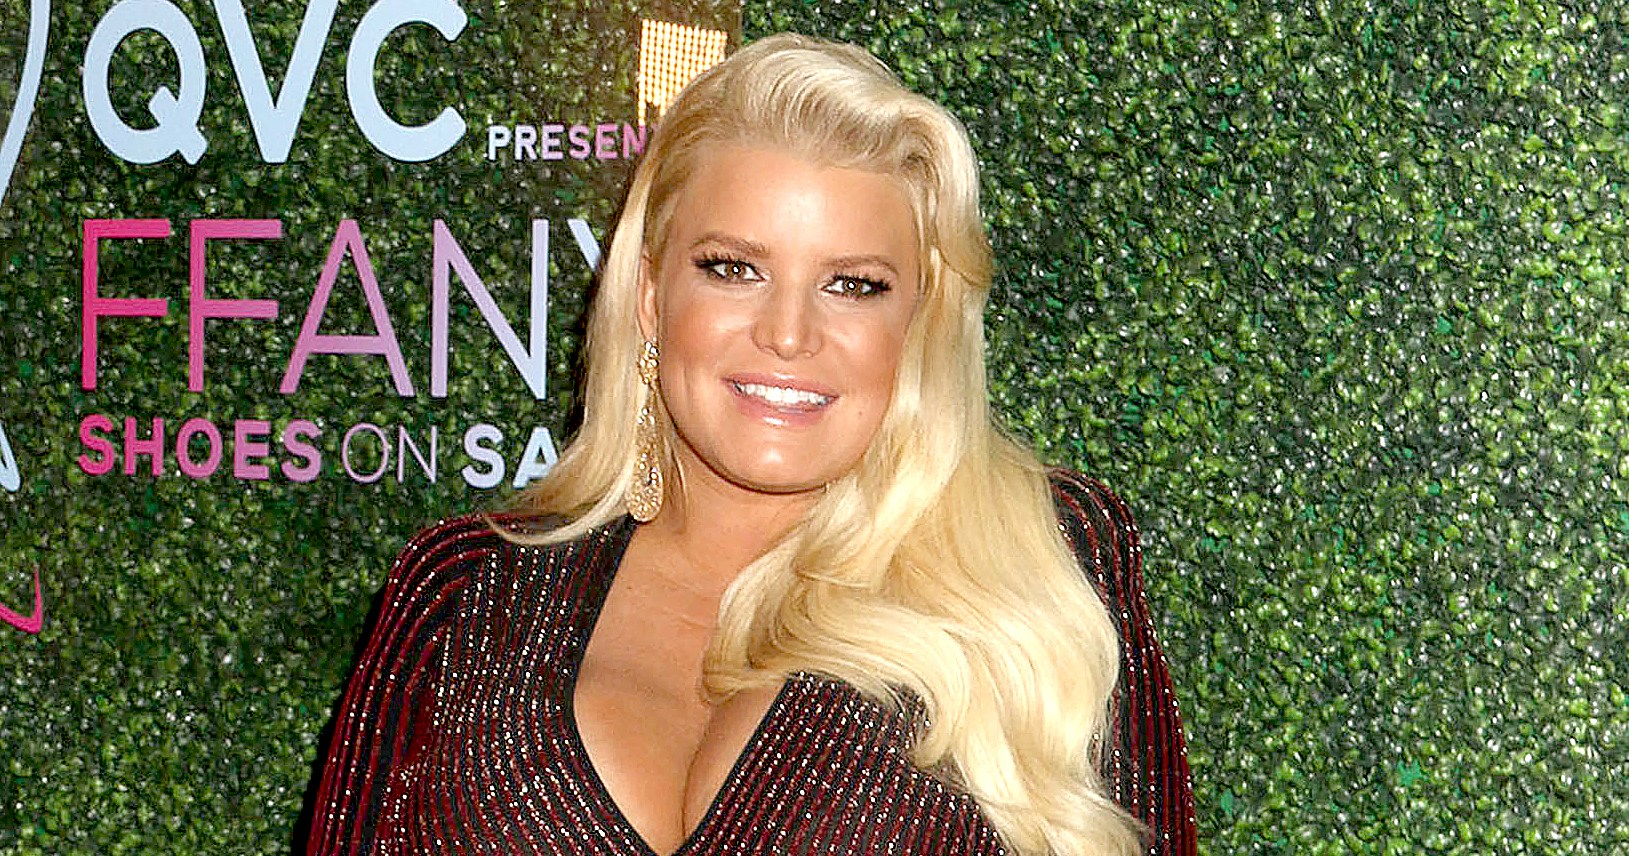 Pregnant Jessica Simpson Mocks Her Extremely Swollen Foot in #10YearChallenge